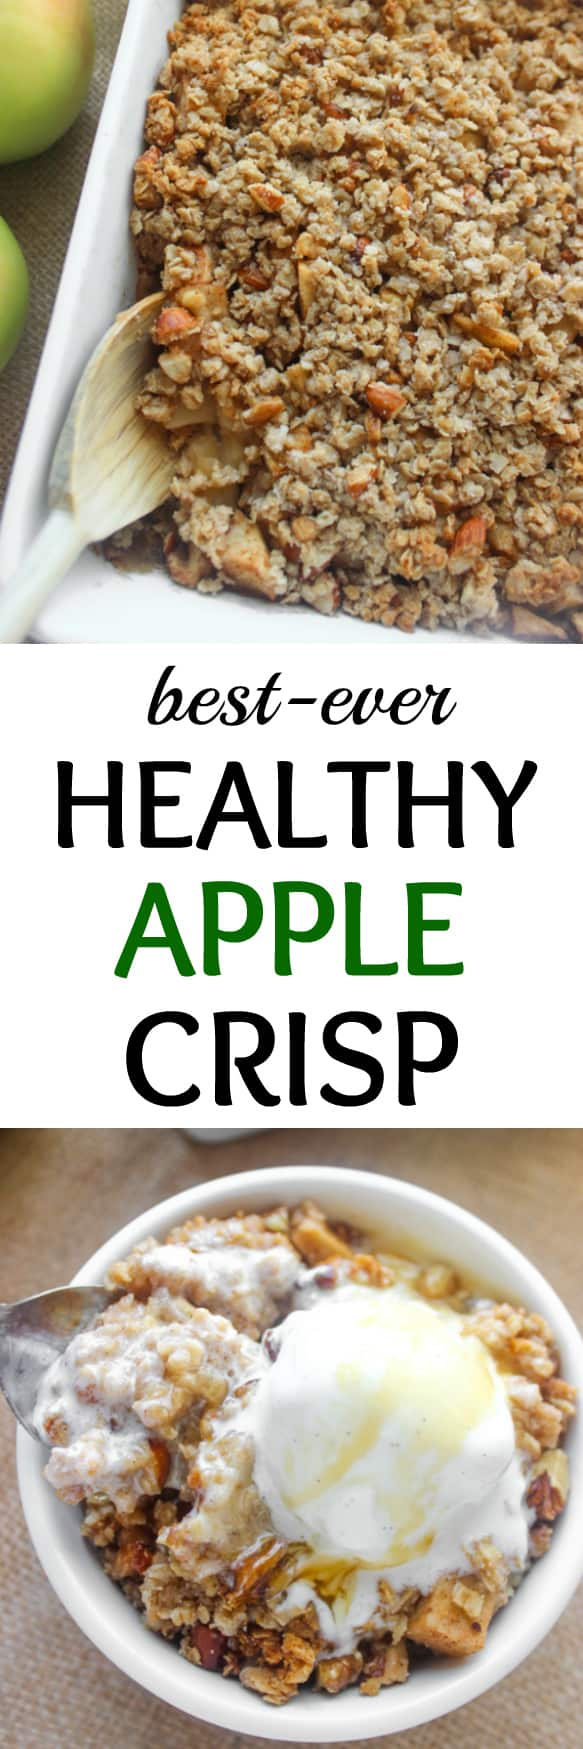 The BEST healthy apple crisp with crumbly topping! Top with vanilla ice cream and you'll be in heaven | healthy-liv.com